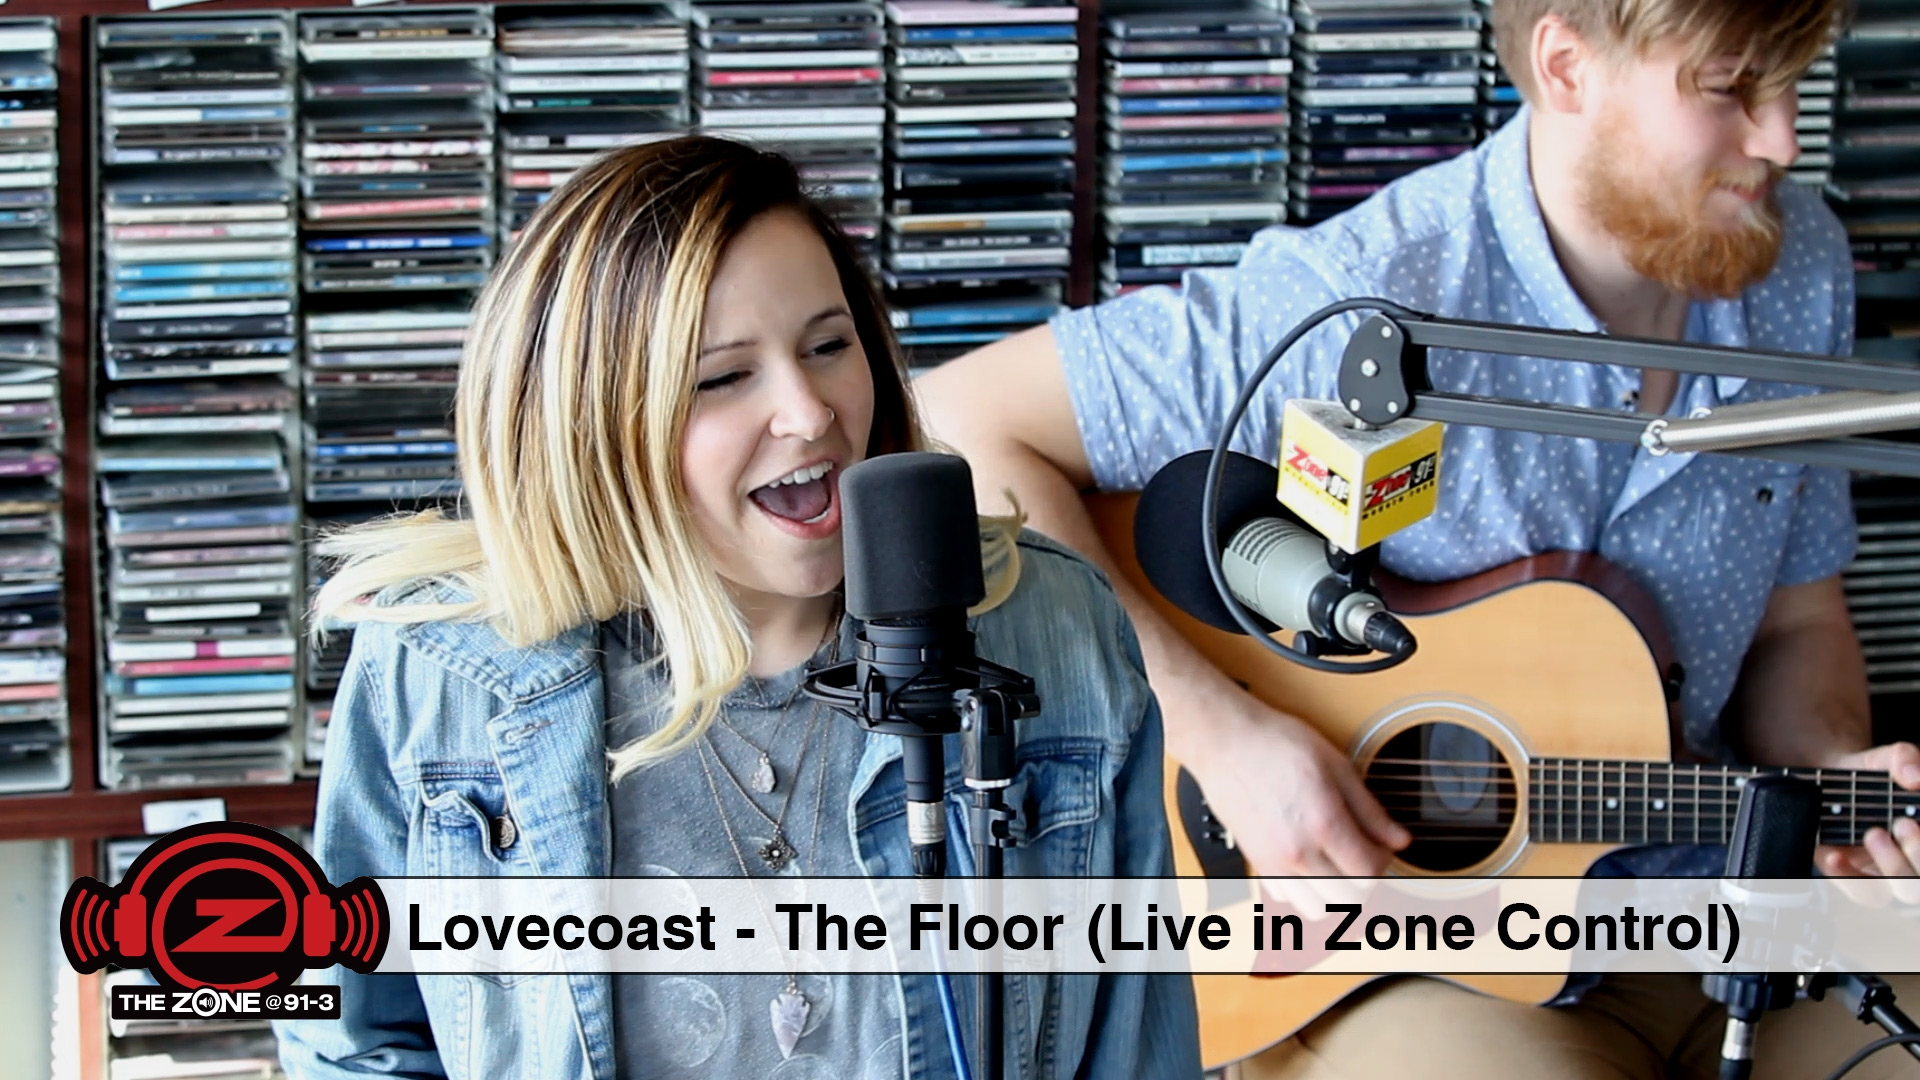 Lovecoast - The Floor (Live in Zone Control)